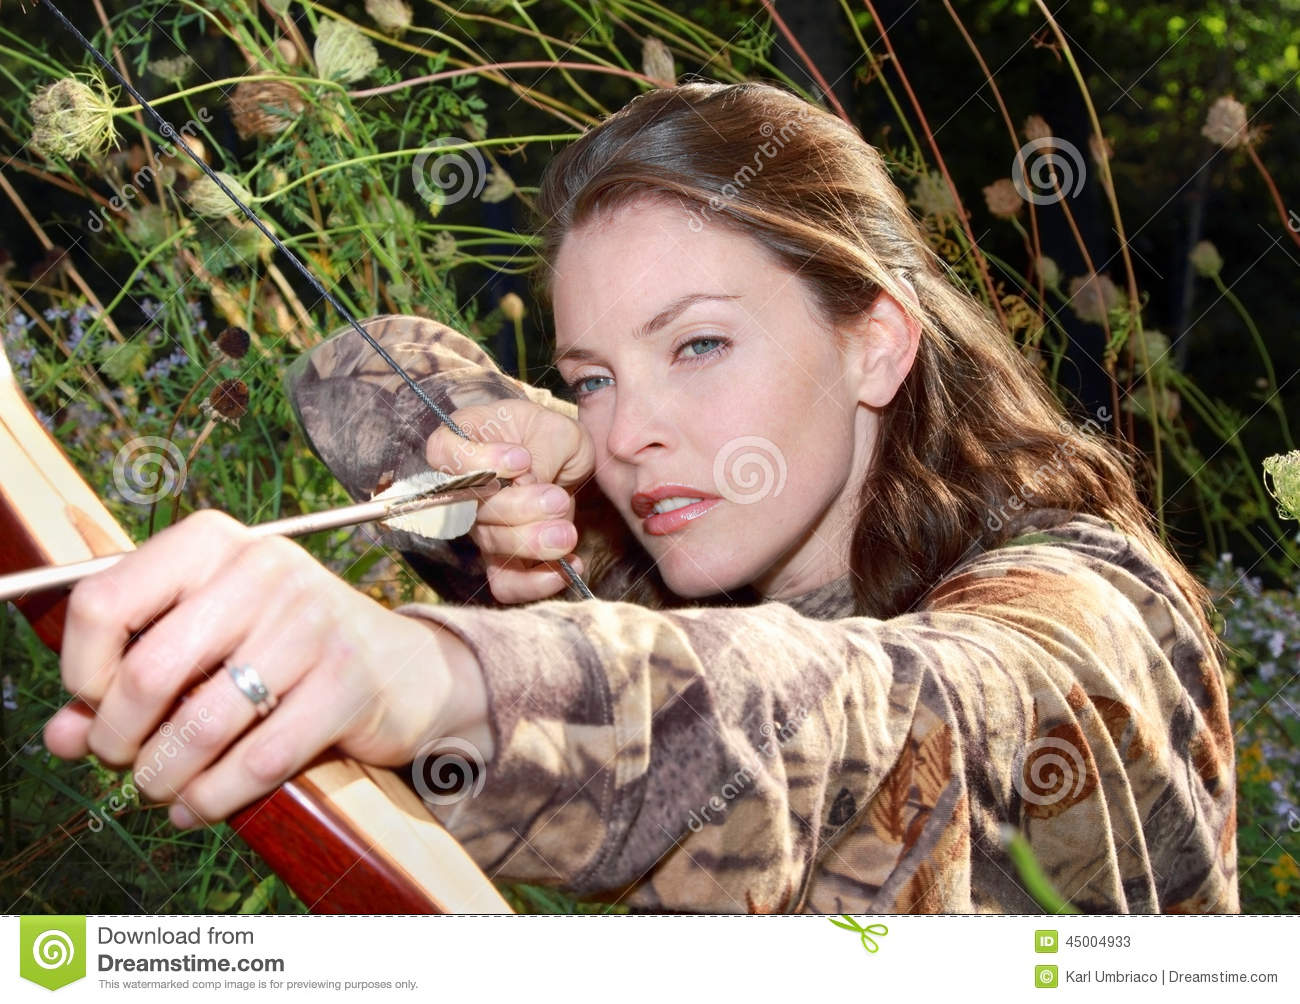 woman hunting stock image  image of beauty  woman  nature